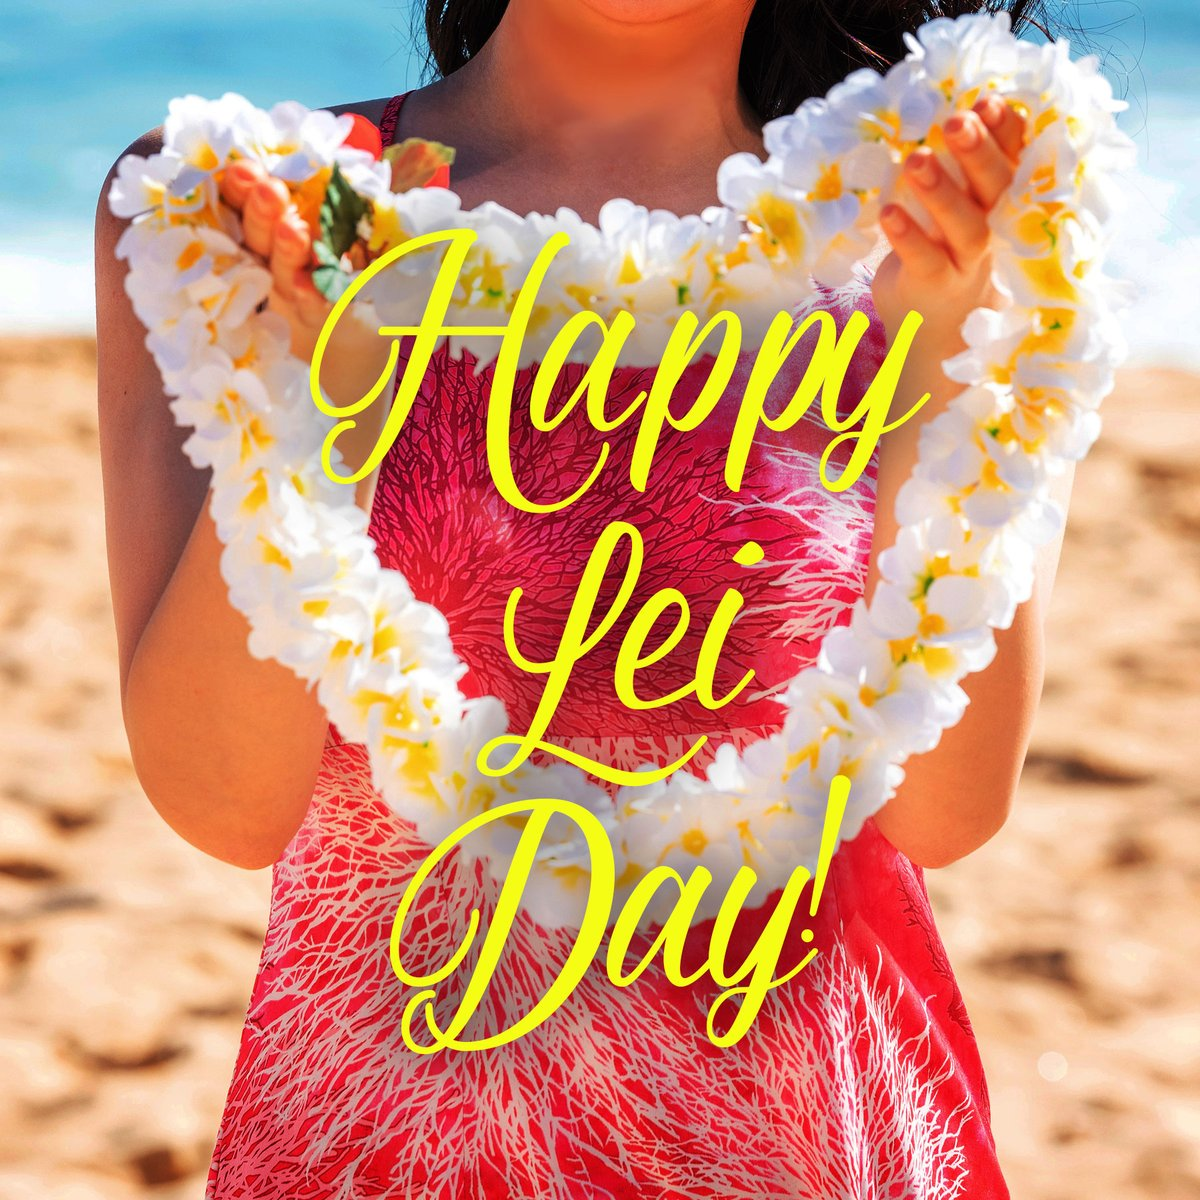 Happy Lei Day! Thinking thoughts of fragrant blossoms and when we can once again greet friends and loved ones with beautiful lei. Mālama Pono. #gokailua #hawaiinokaoi #maydayisleiday https://t.co/DW66RvkxvQ